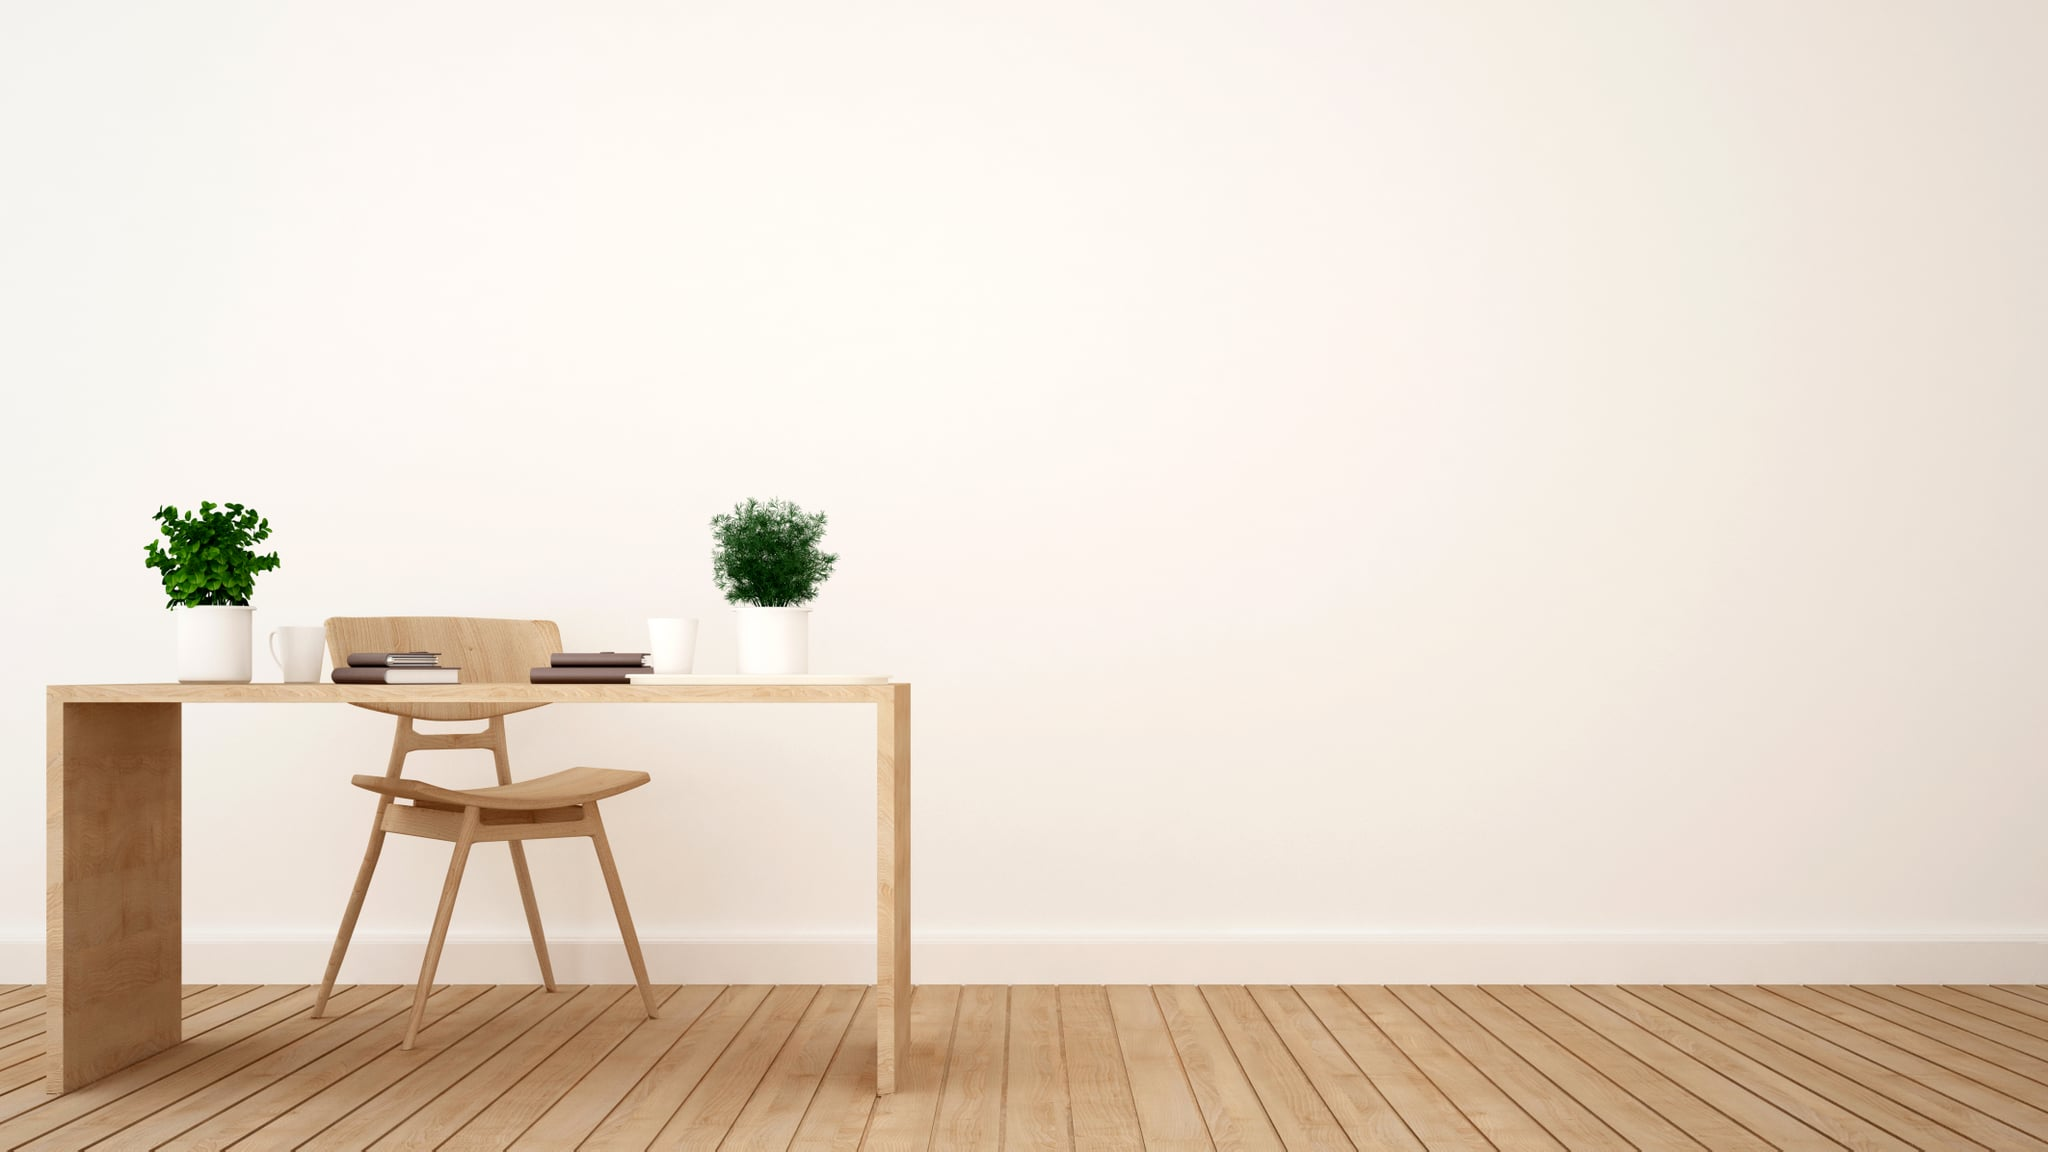 Minimalism can make you happier popsugar australia smart for S design photo